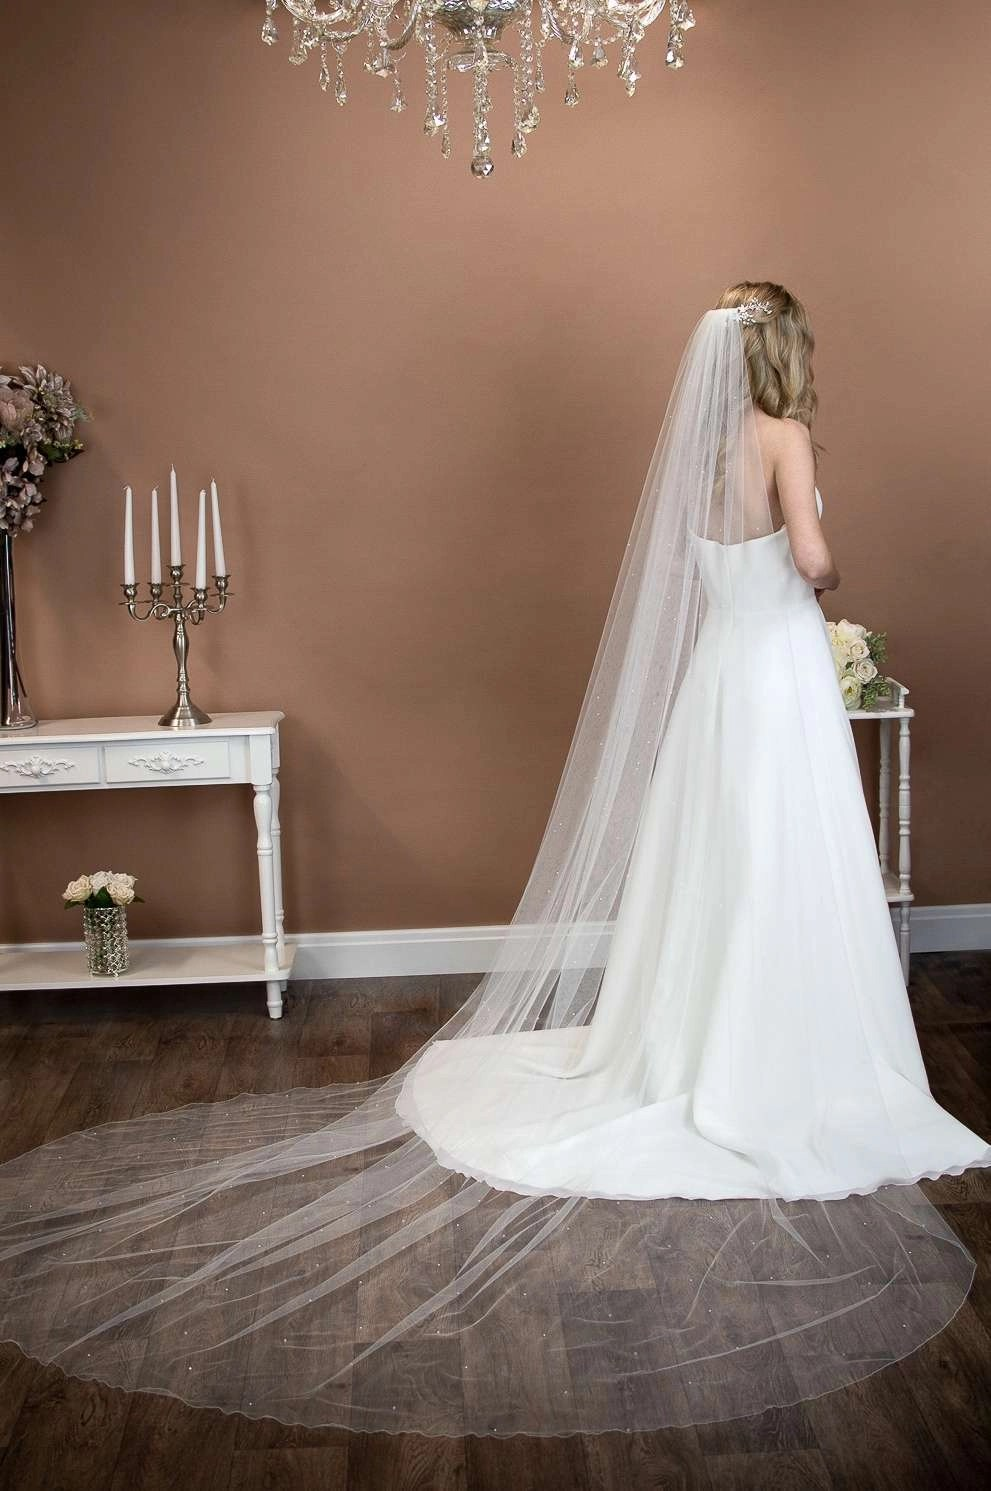 Alexis - extra long cathedral length wedding veil with pearls and crystals on bride